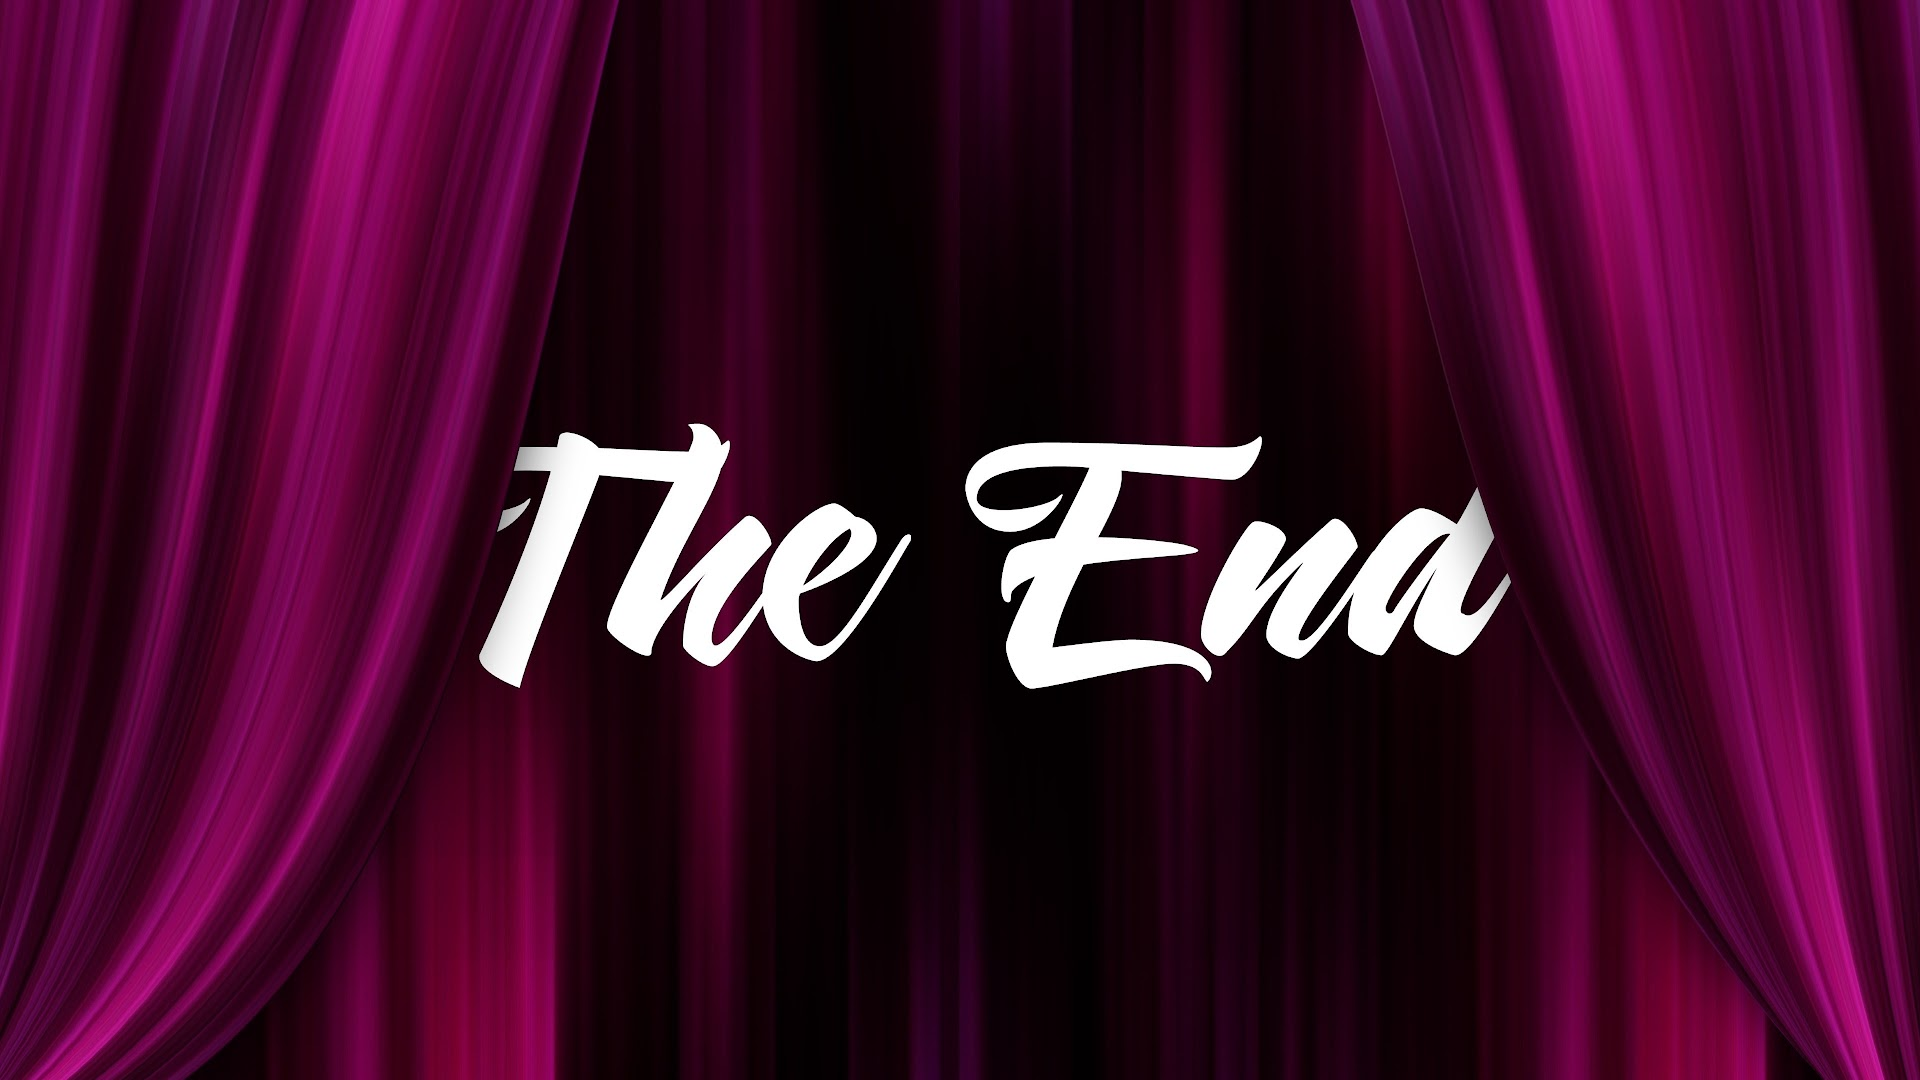 the end wallpaper hd wallpapers